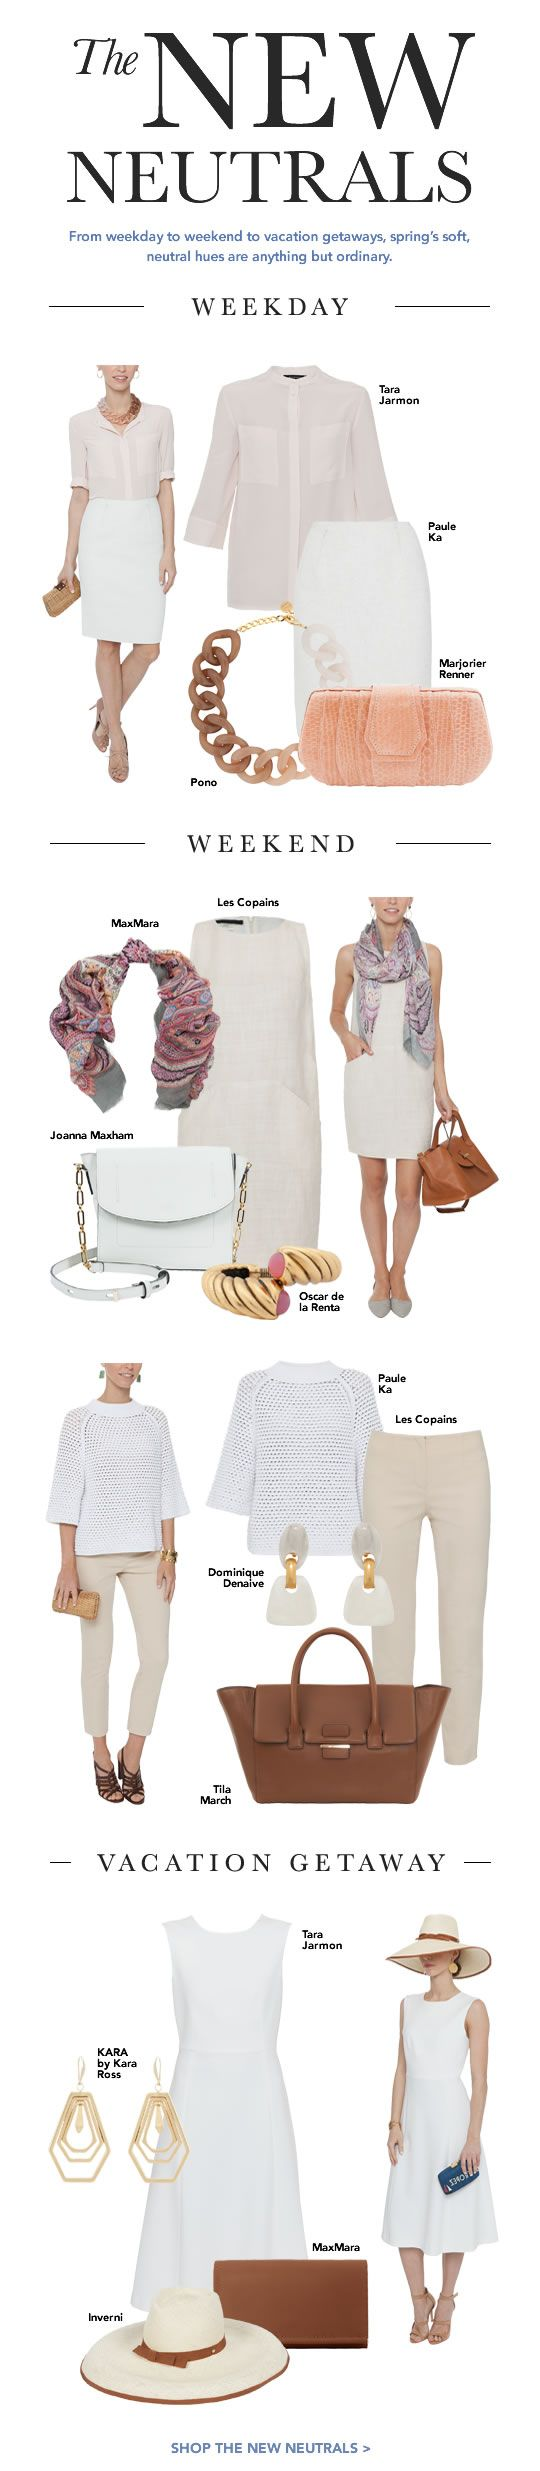 StyleGuide: New Neutrals (click to enlarge)